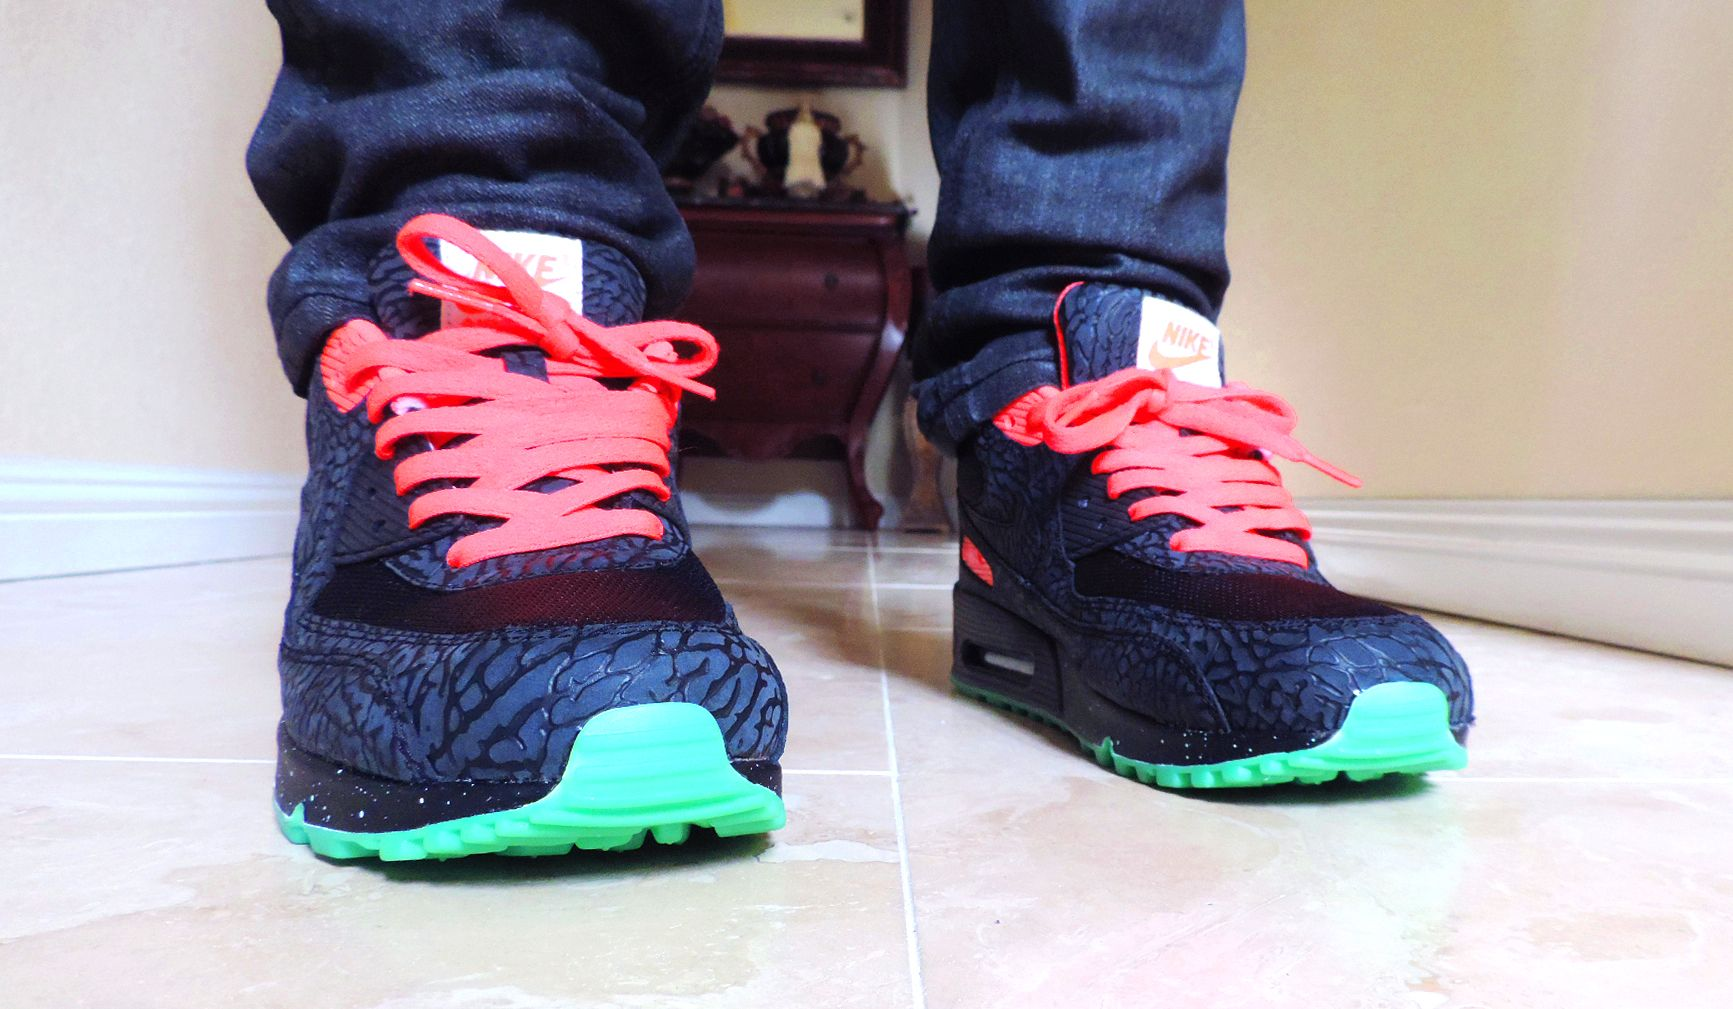 sale retailer 38871 70278 ... switzerland 3lab90 x yeezy 2 air max 90 id deisoned by niclacoste nike  airmax airmax90 sneakers